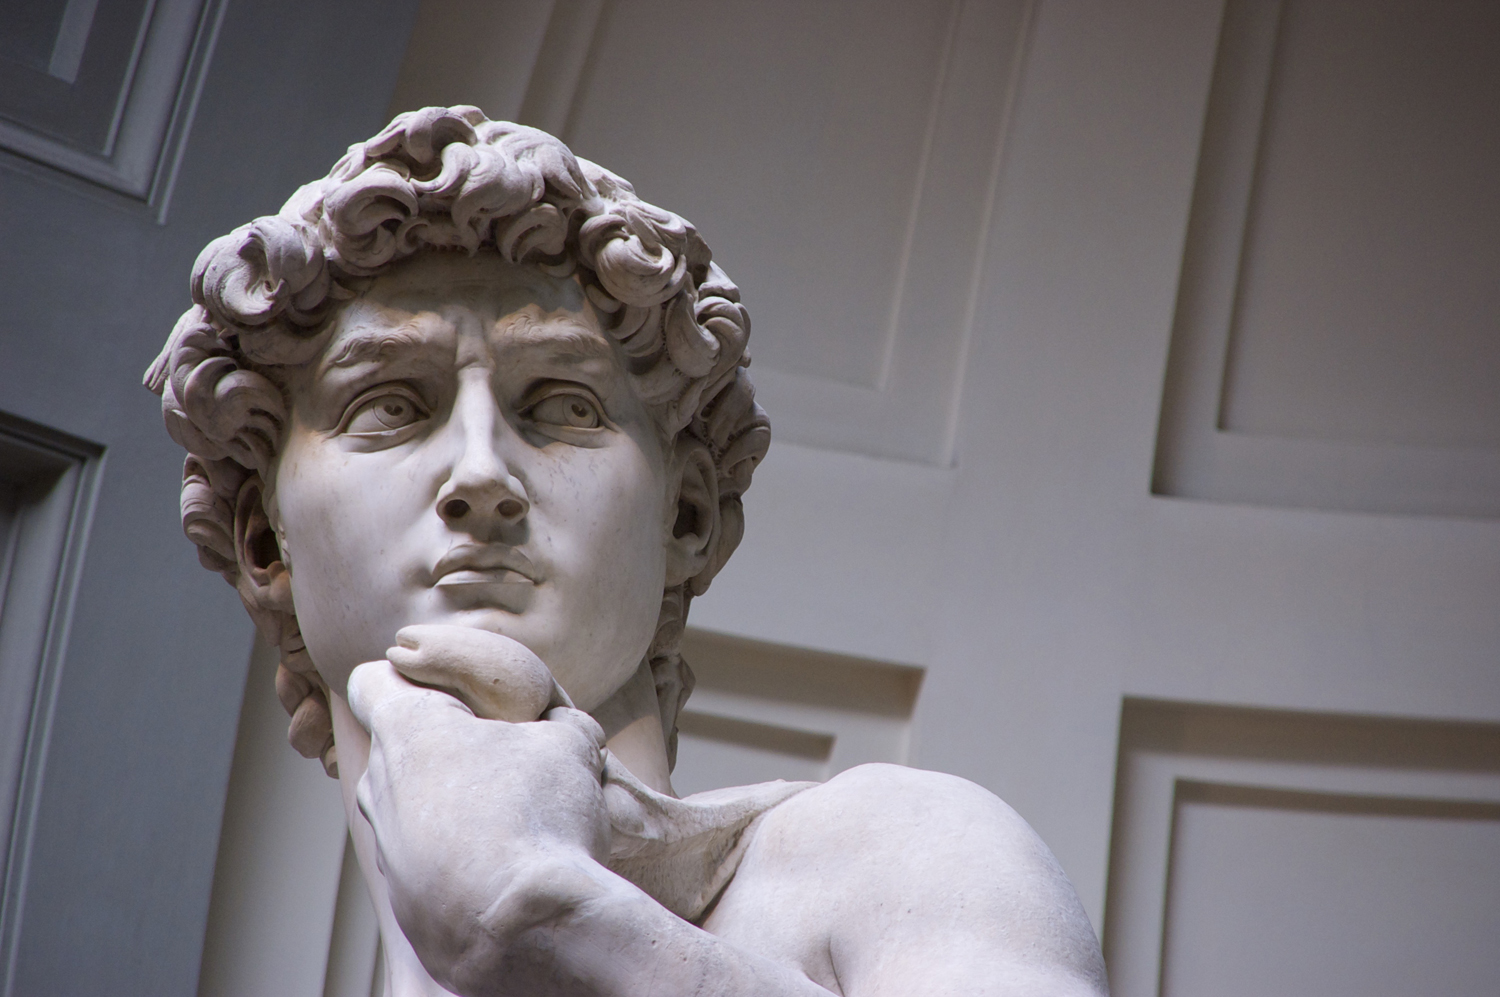 Michelangelo images - This View Of The David Shows That Michelangelo Carved The Biblical Hero As A Southpaw